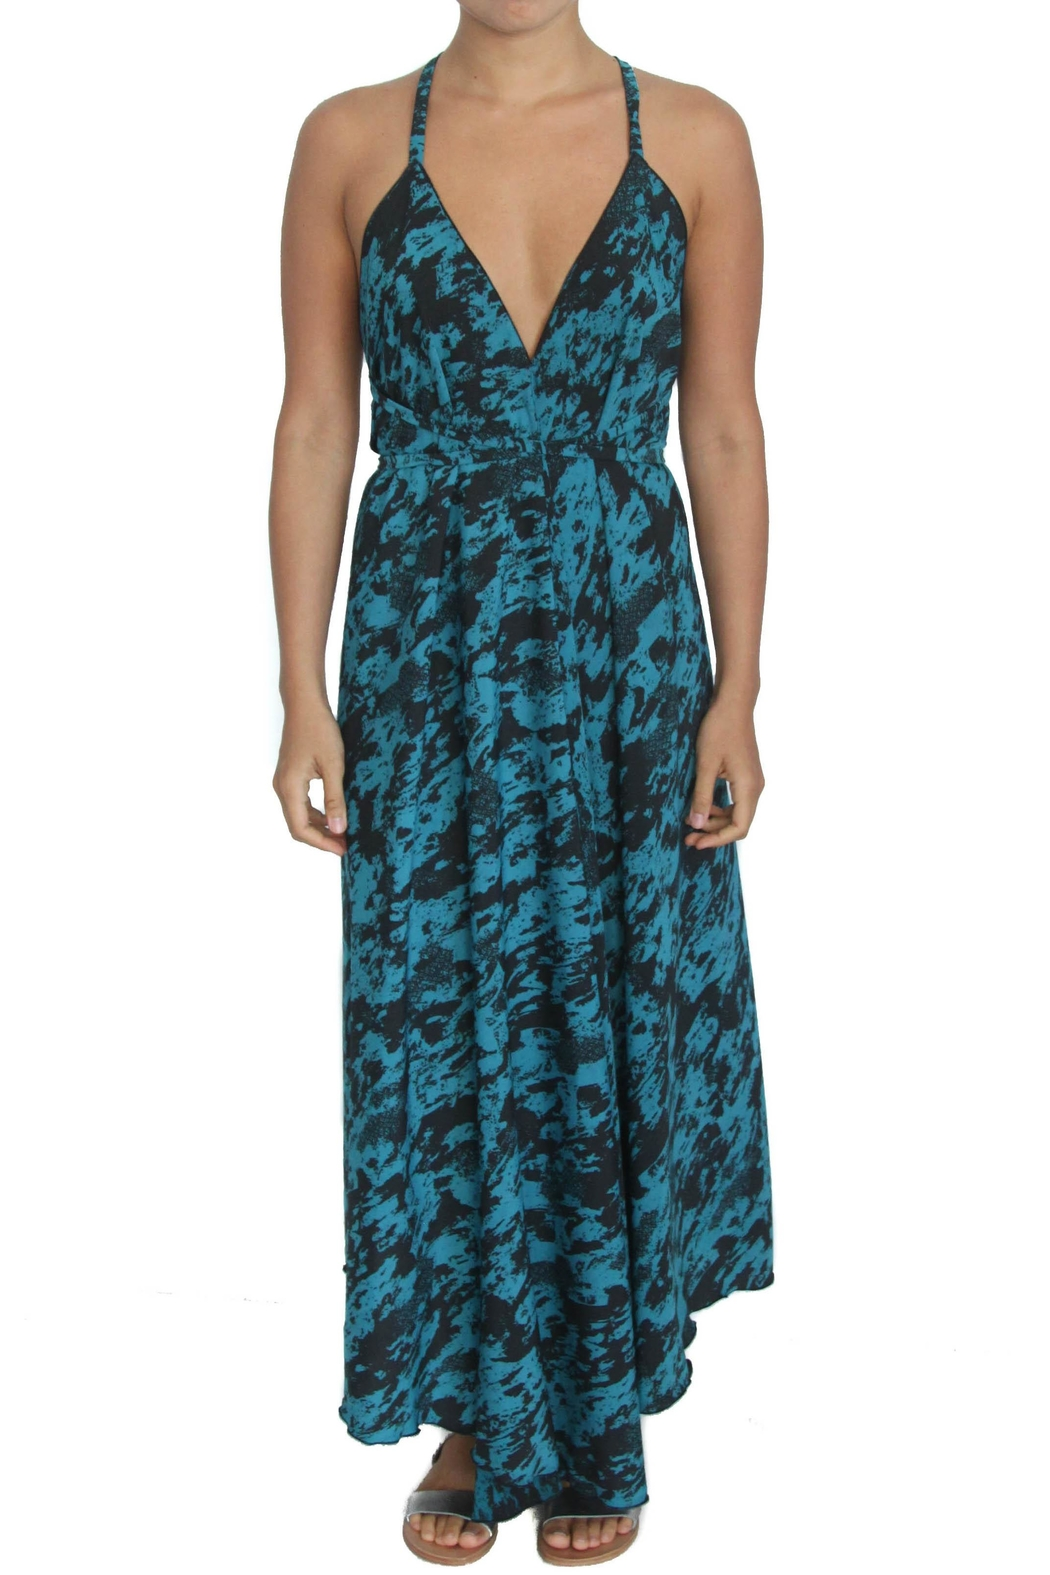 LOVEleigh Mystery Noosa Dress - Main Image